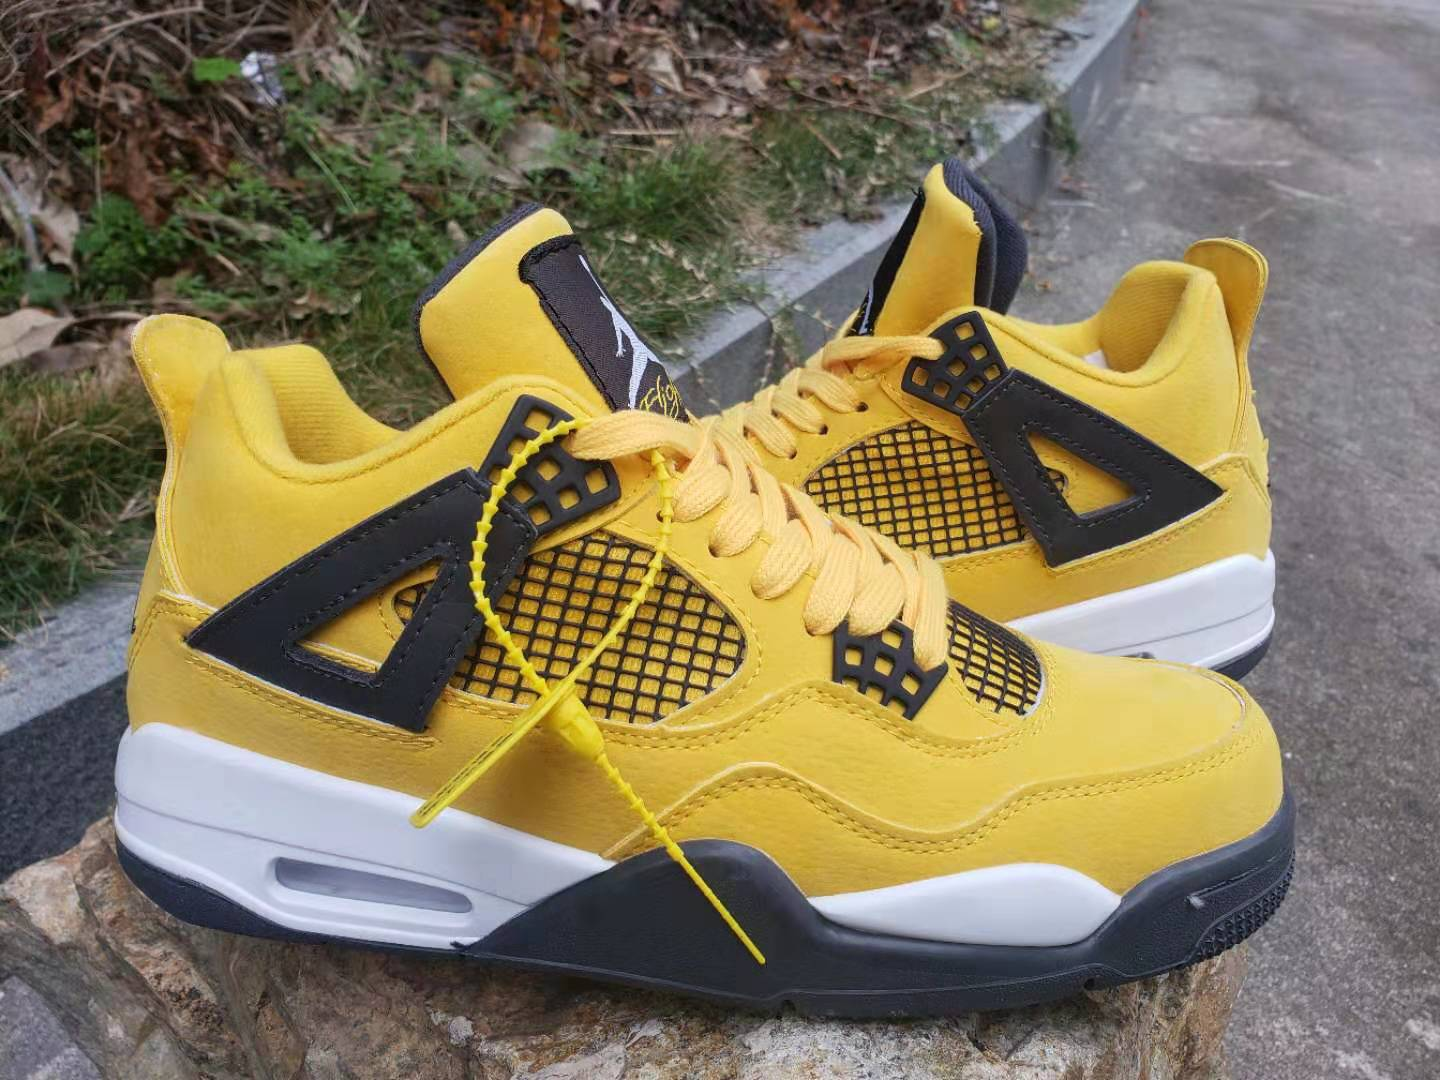 Jordan Shoes 4 All Yellow For Cheap